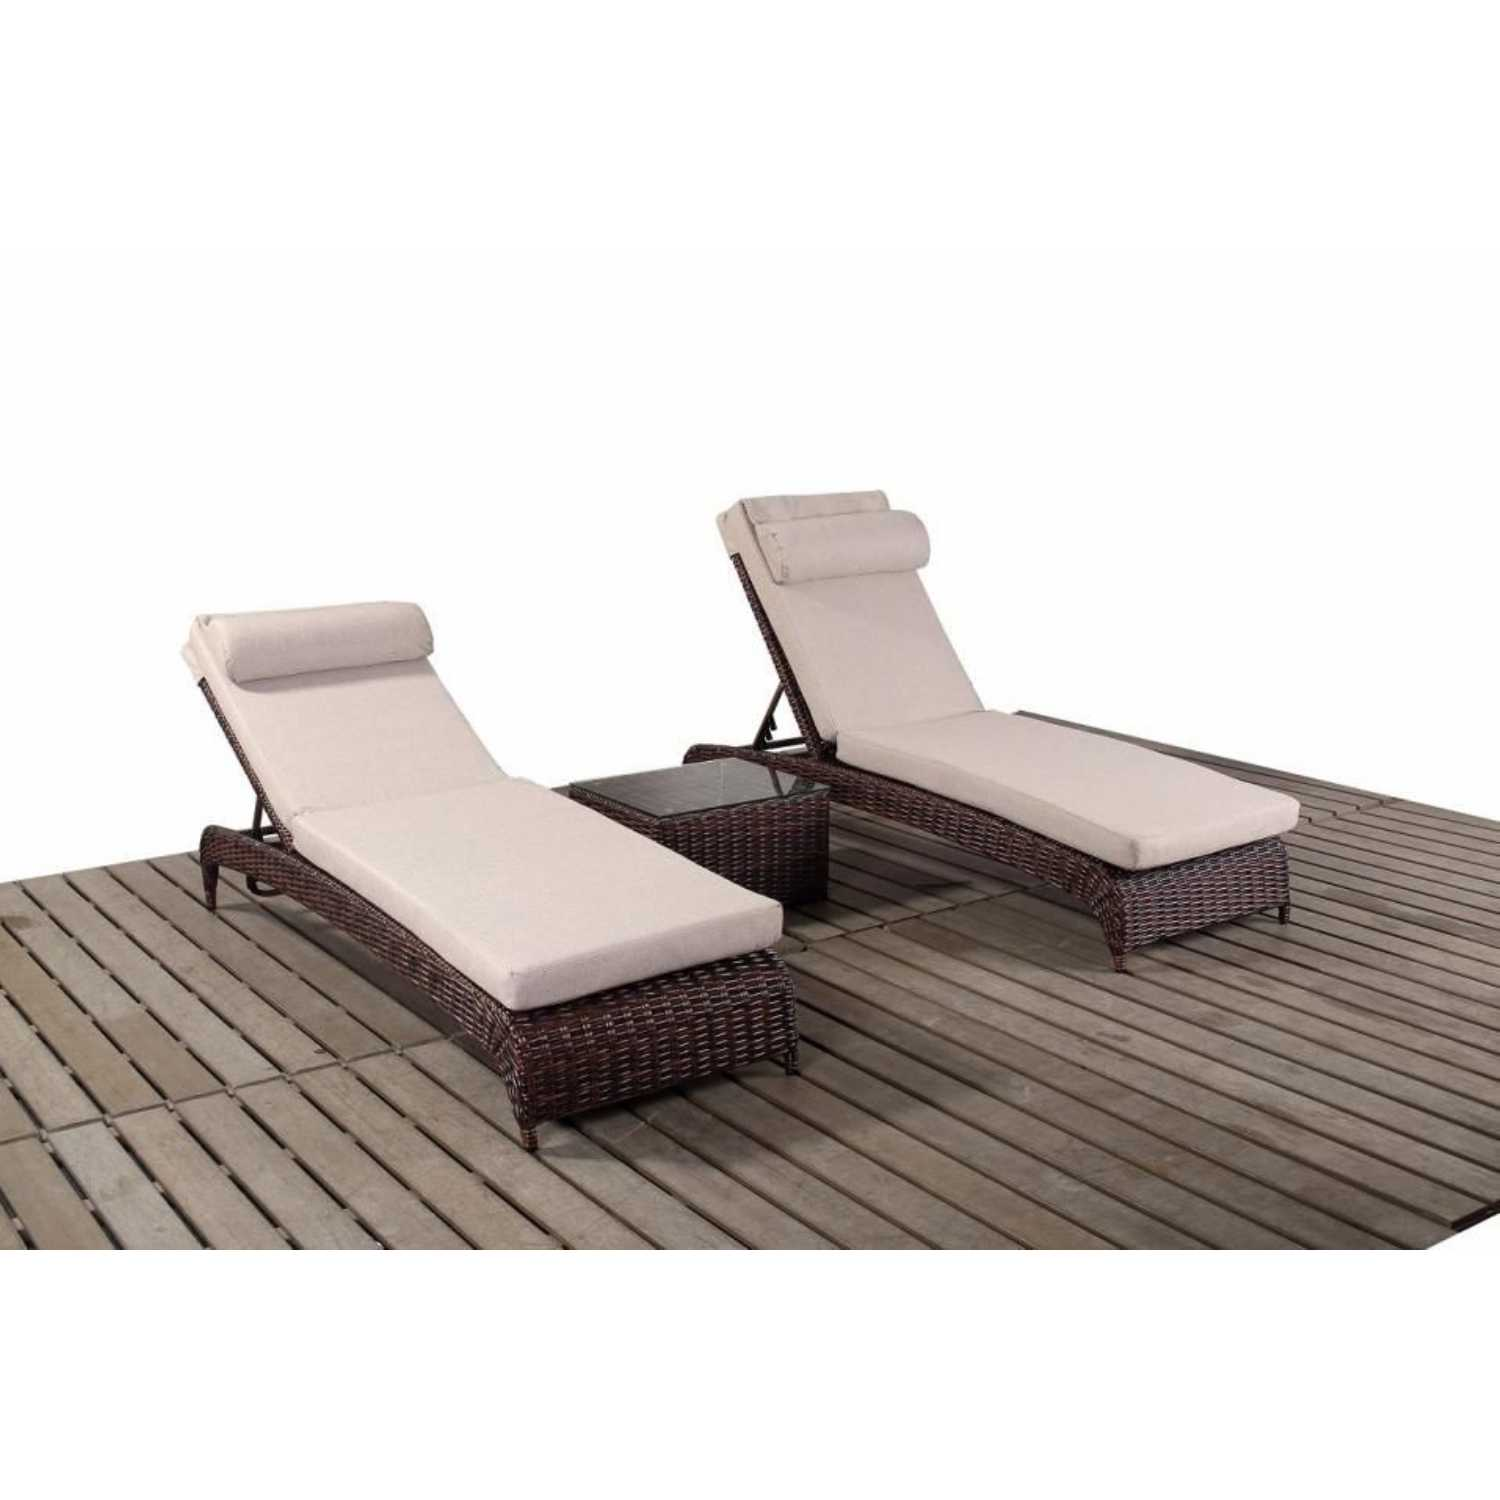 pair of rattan port royal windsor sun loungers cushions and side table